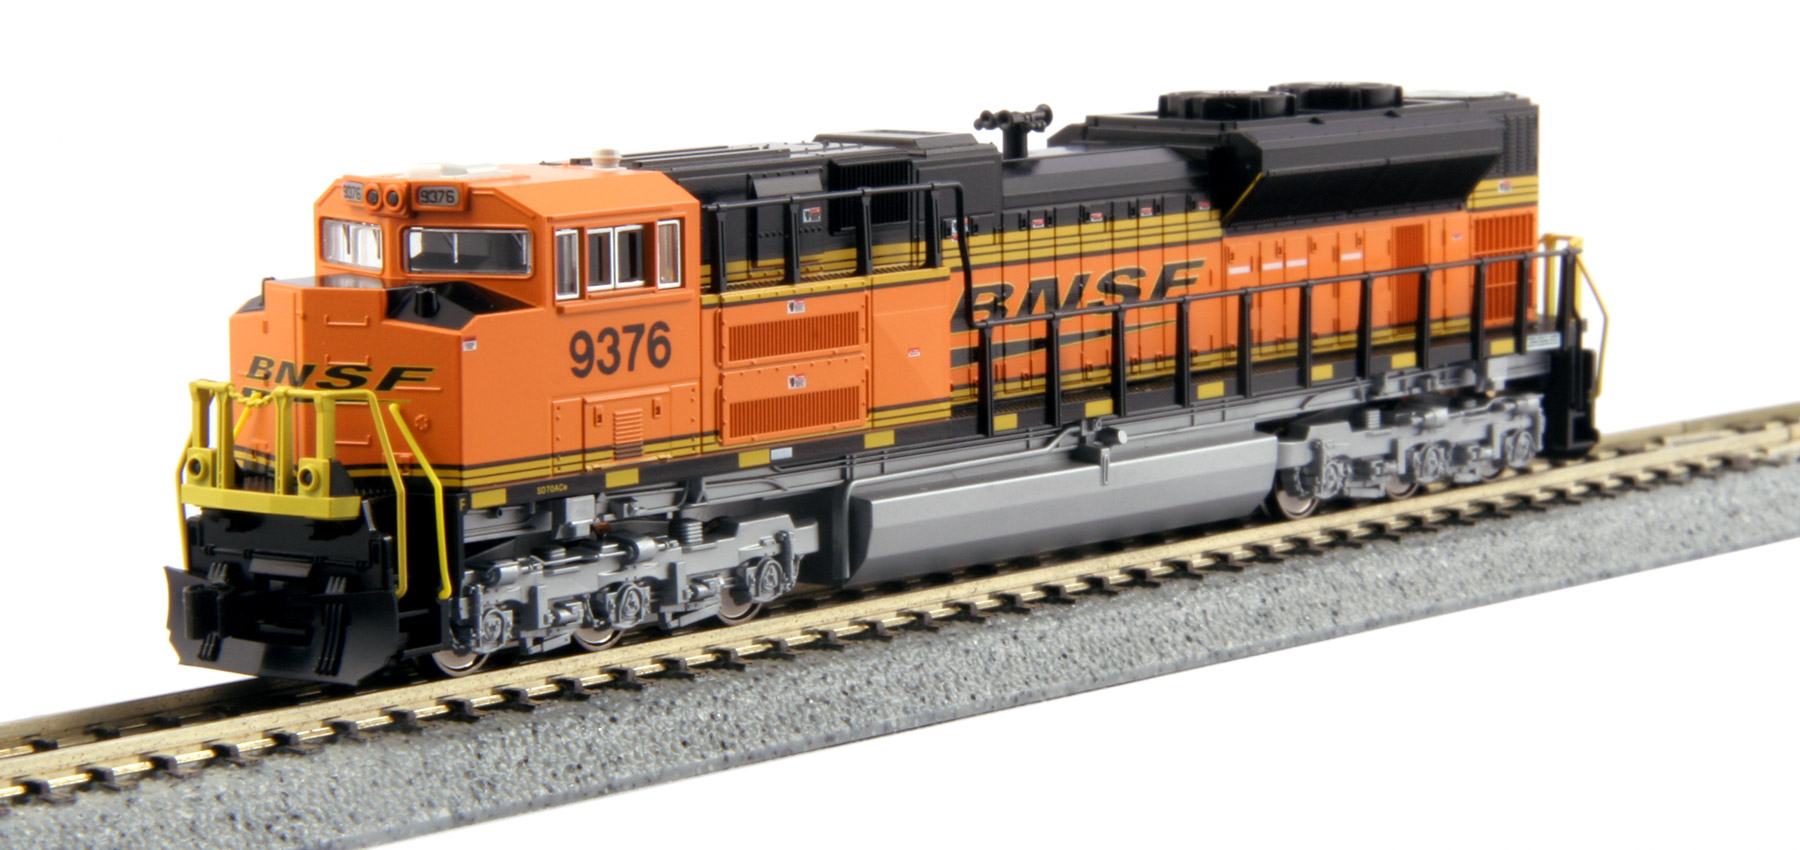 Kato 176-8434 N BNSF  Swoosh  EMD SD70ACe #9376 This is a Kato 176-8434 N Scale BNSF Swoosh EMD SD70ACe #9376. The SD70ACe is the latest in the line of EMD's 70 locomotives, an evolution of the SD70MAC, although its radiator design harkens more to that of the SD80/90 body. The SD70ACe has been designed to fit the latest EPA standards and regulations, and sports 4300 horsepower. The Union Pacific is one of the largest original buyers of EMD's new ACe units, and continues to add more to their roster. Model Features: Powerful Kato mechanism powered by a 5-pole flywheel motor and featuring a 9 3/4 minimum turning radius. Directional Headlight and illuminated, preprinted numberboards. Illuminated ditch lights. DCC Friendly mechanism ready for drop-in decoder installation.Condition: Factory New (C-9All original; unused; factory rubs and evidence of handling, shipping and factory test run.Standards for all toy train related accessory items apply to the visual appearance of the item and do not consider the operating functionality of the equipment.Condition and Grading Standards are subjective, at best, and are intended to act as a guide. )Operational Status: FunctionalThis item is brand new from the factory.Original Box: Yes (P-9May have store stamps and price tags. Has inner liners.)Manufacturer: KatoModel Number: 176-8434Road Name: BNSFMSRP: $130.00Scale/Era: N ScaleModel Type: Diesel LocoAvailability: Ships in 1 Business Day!The Trainz SKU for this item is P12170800. Track: 12170800 - No Location Assigned - 001 - TrainzAuctionGroup00UNK - TDIDUNK